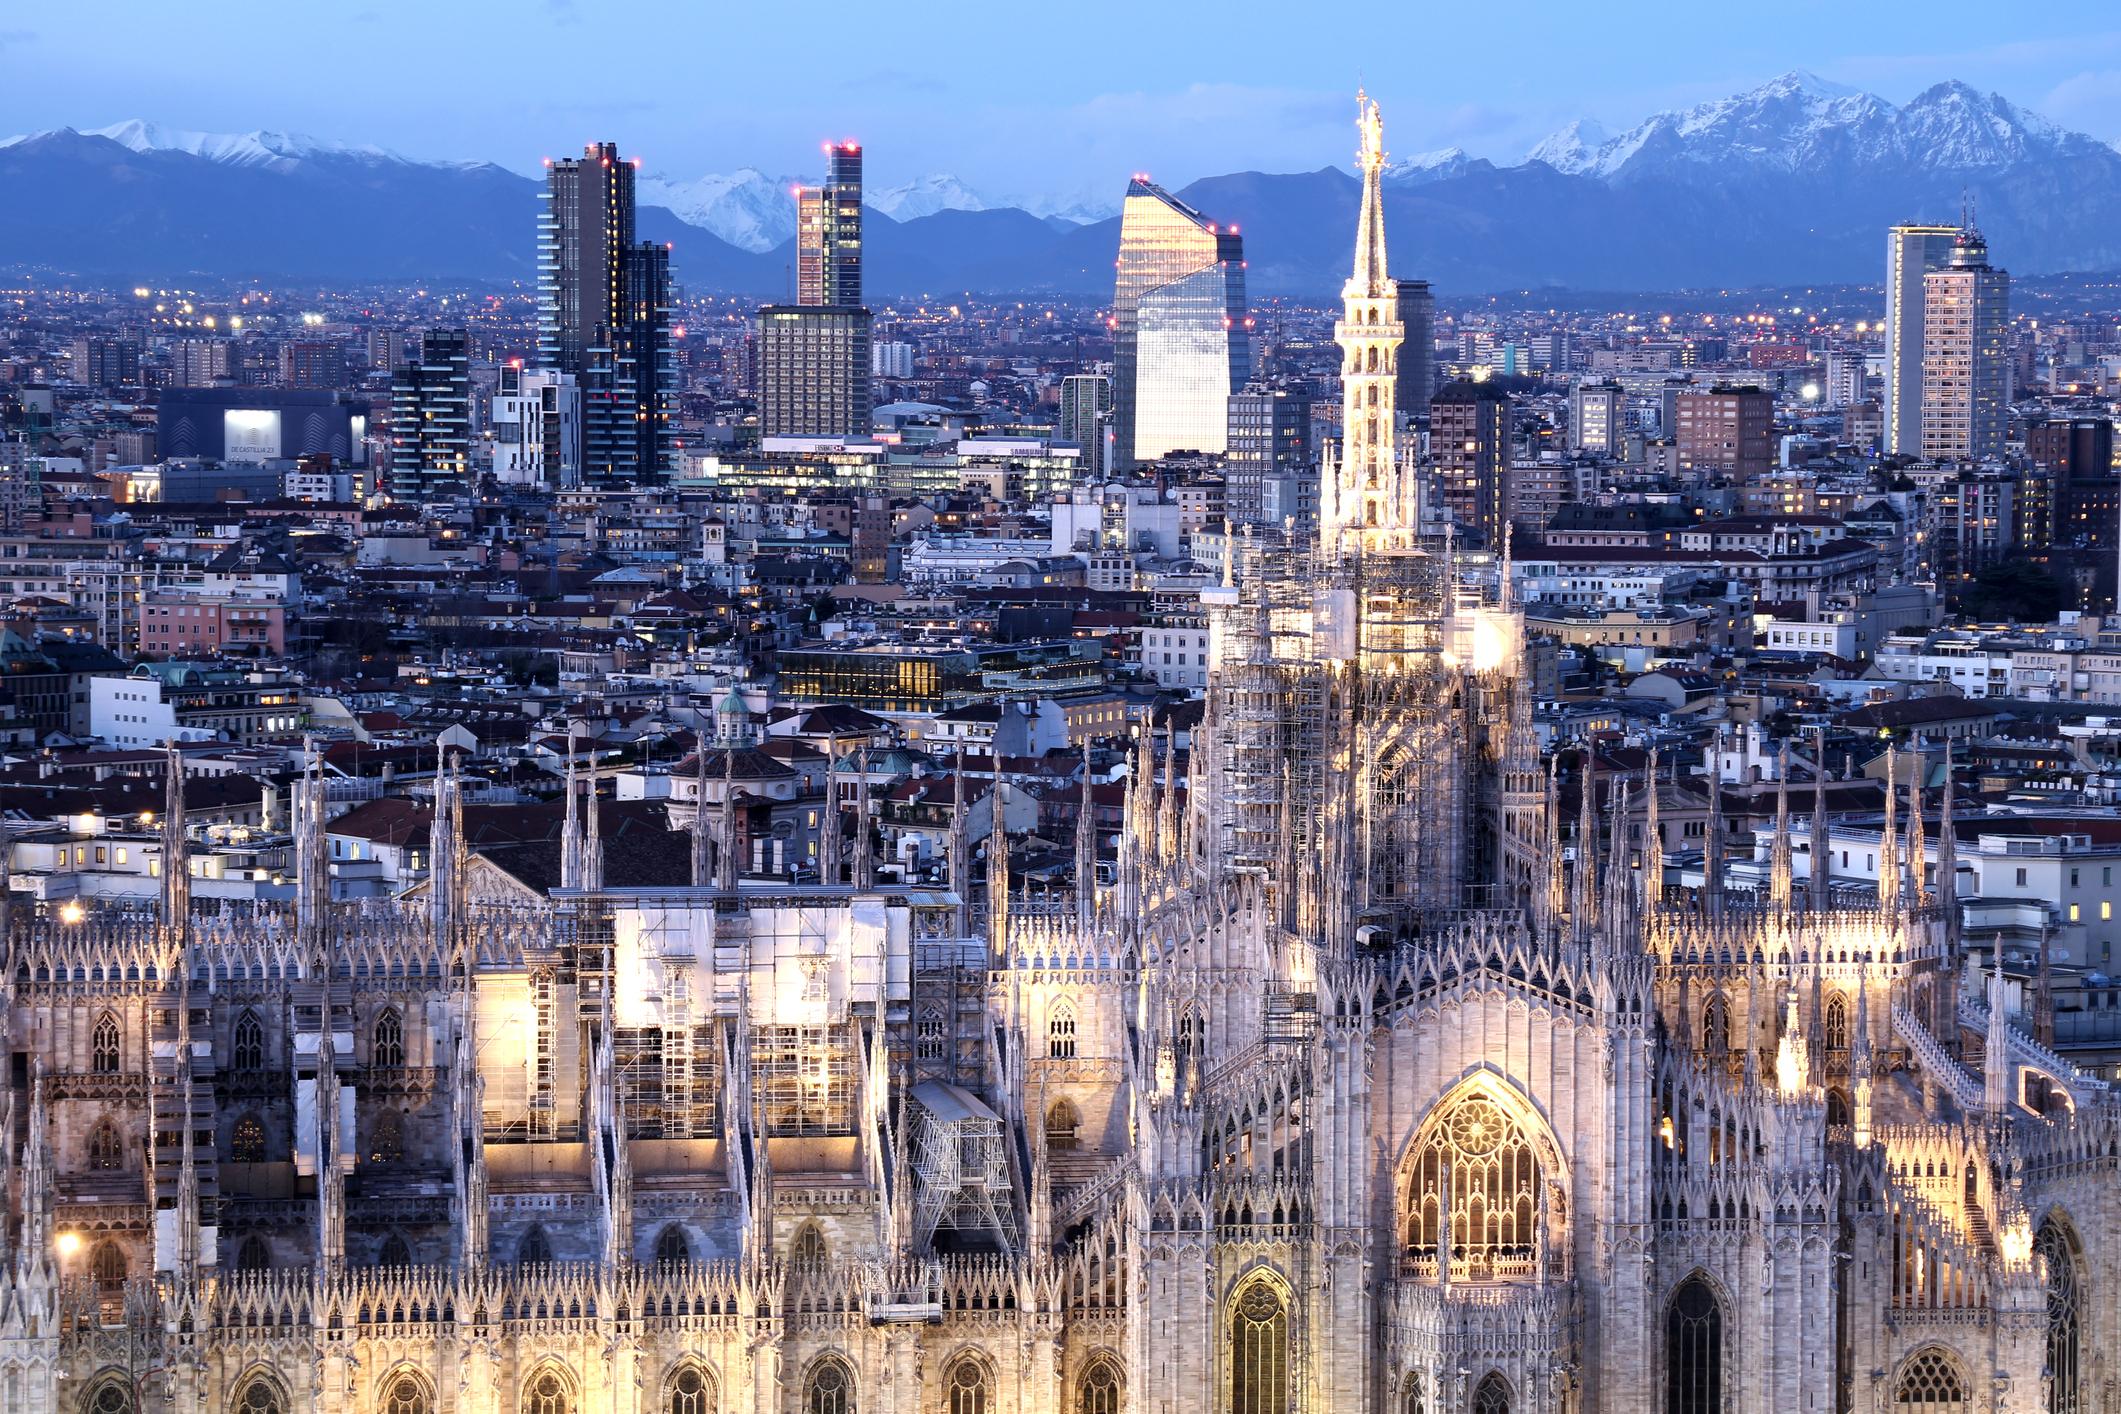 milan italy skyline cathedral development hotel tour country investor sentiment influx leads duomo lgbtq debuts operator quiiky call management